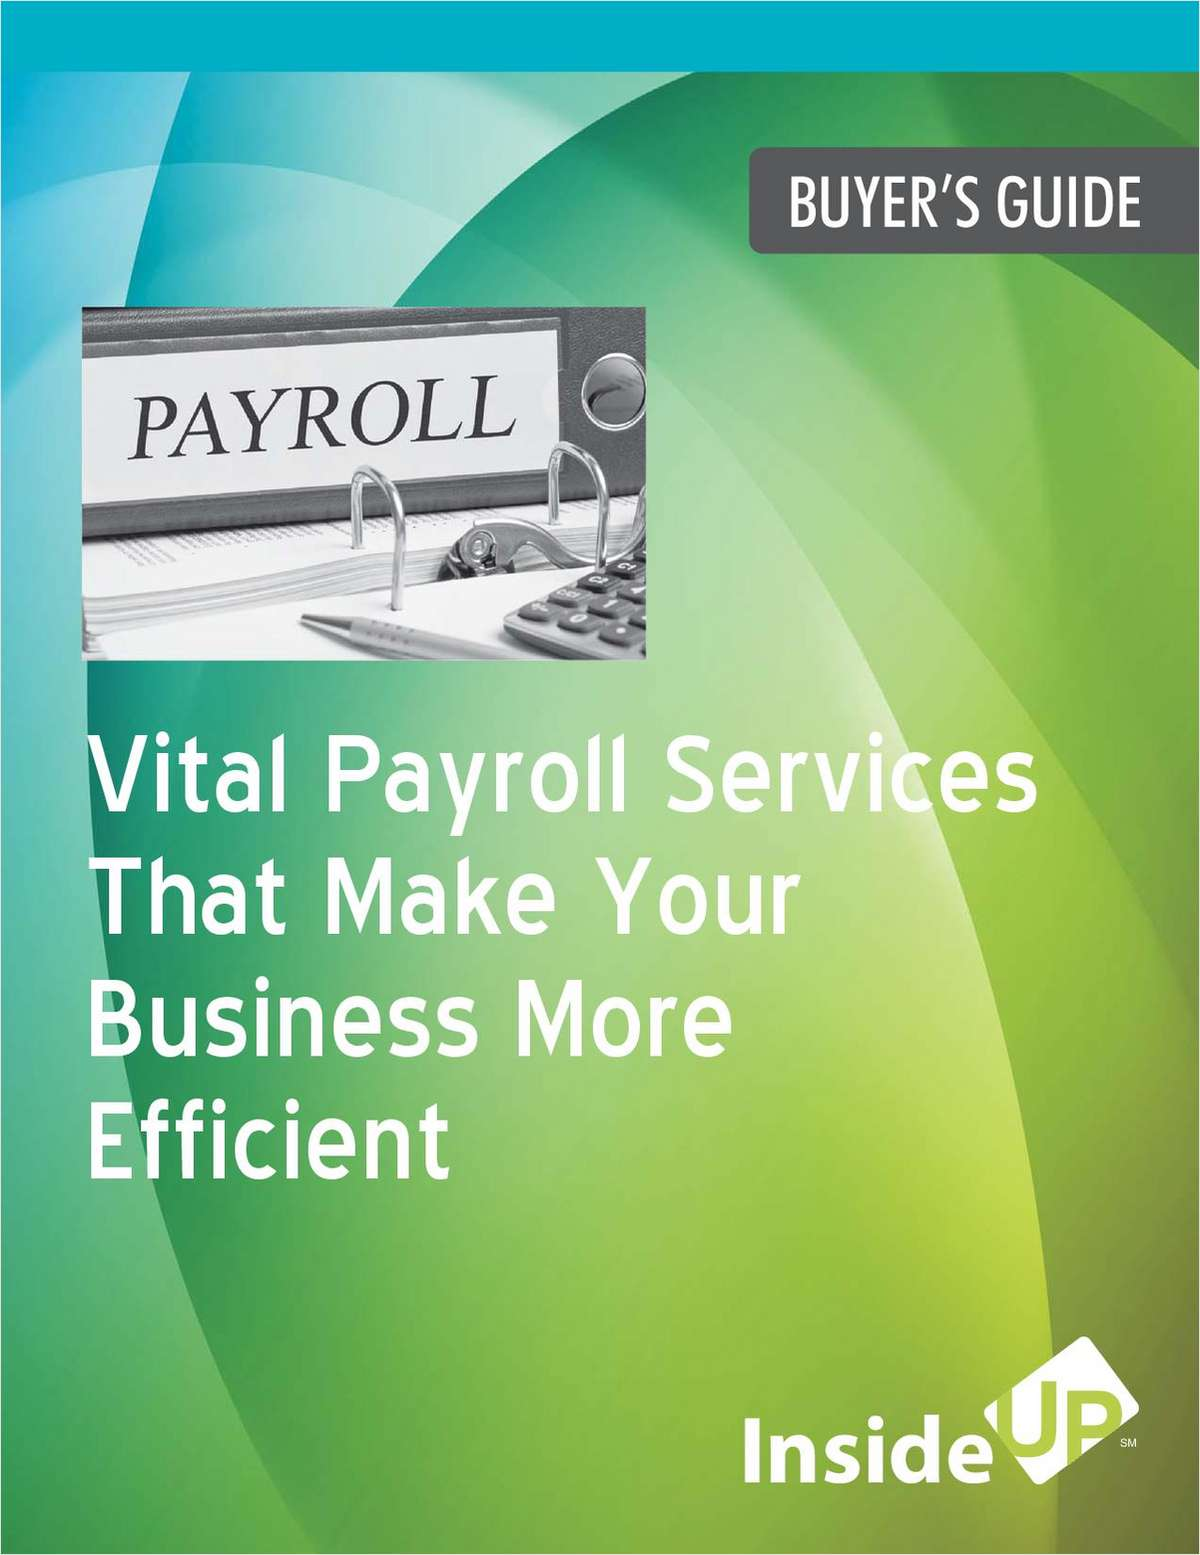 Vital Payroll Services That Make Your Business More Efficient